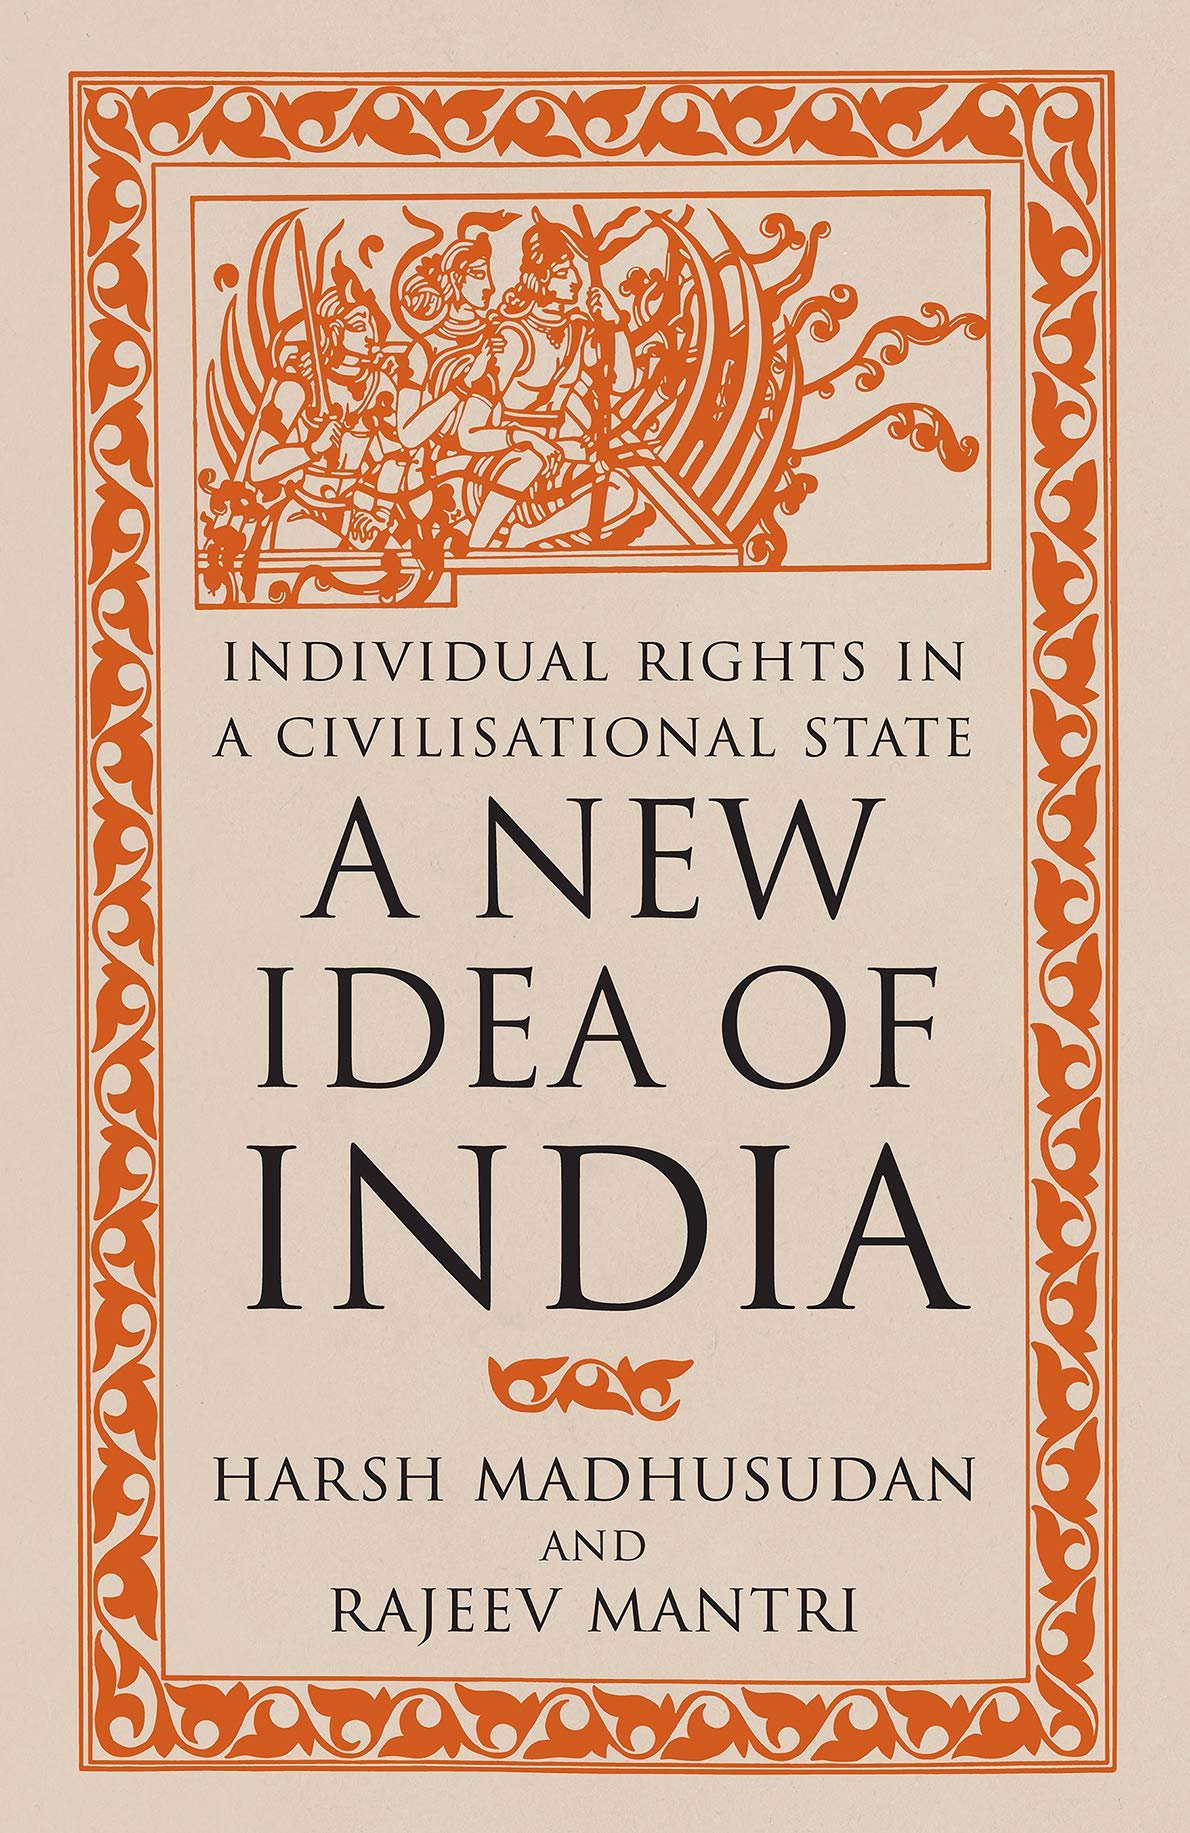 Book Review of A New Idea of India: Individual Rights in a Civilisational State